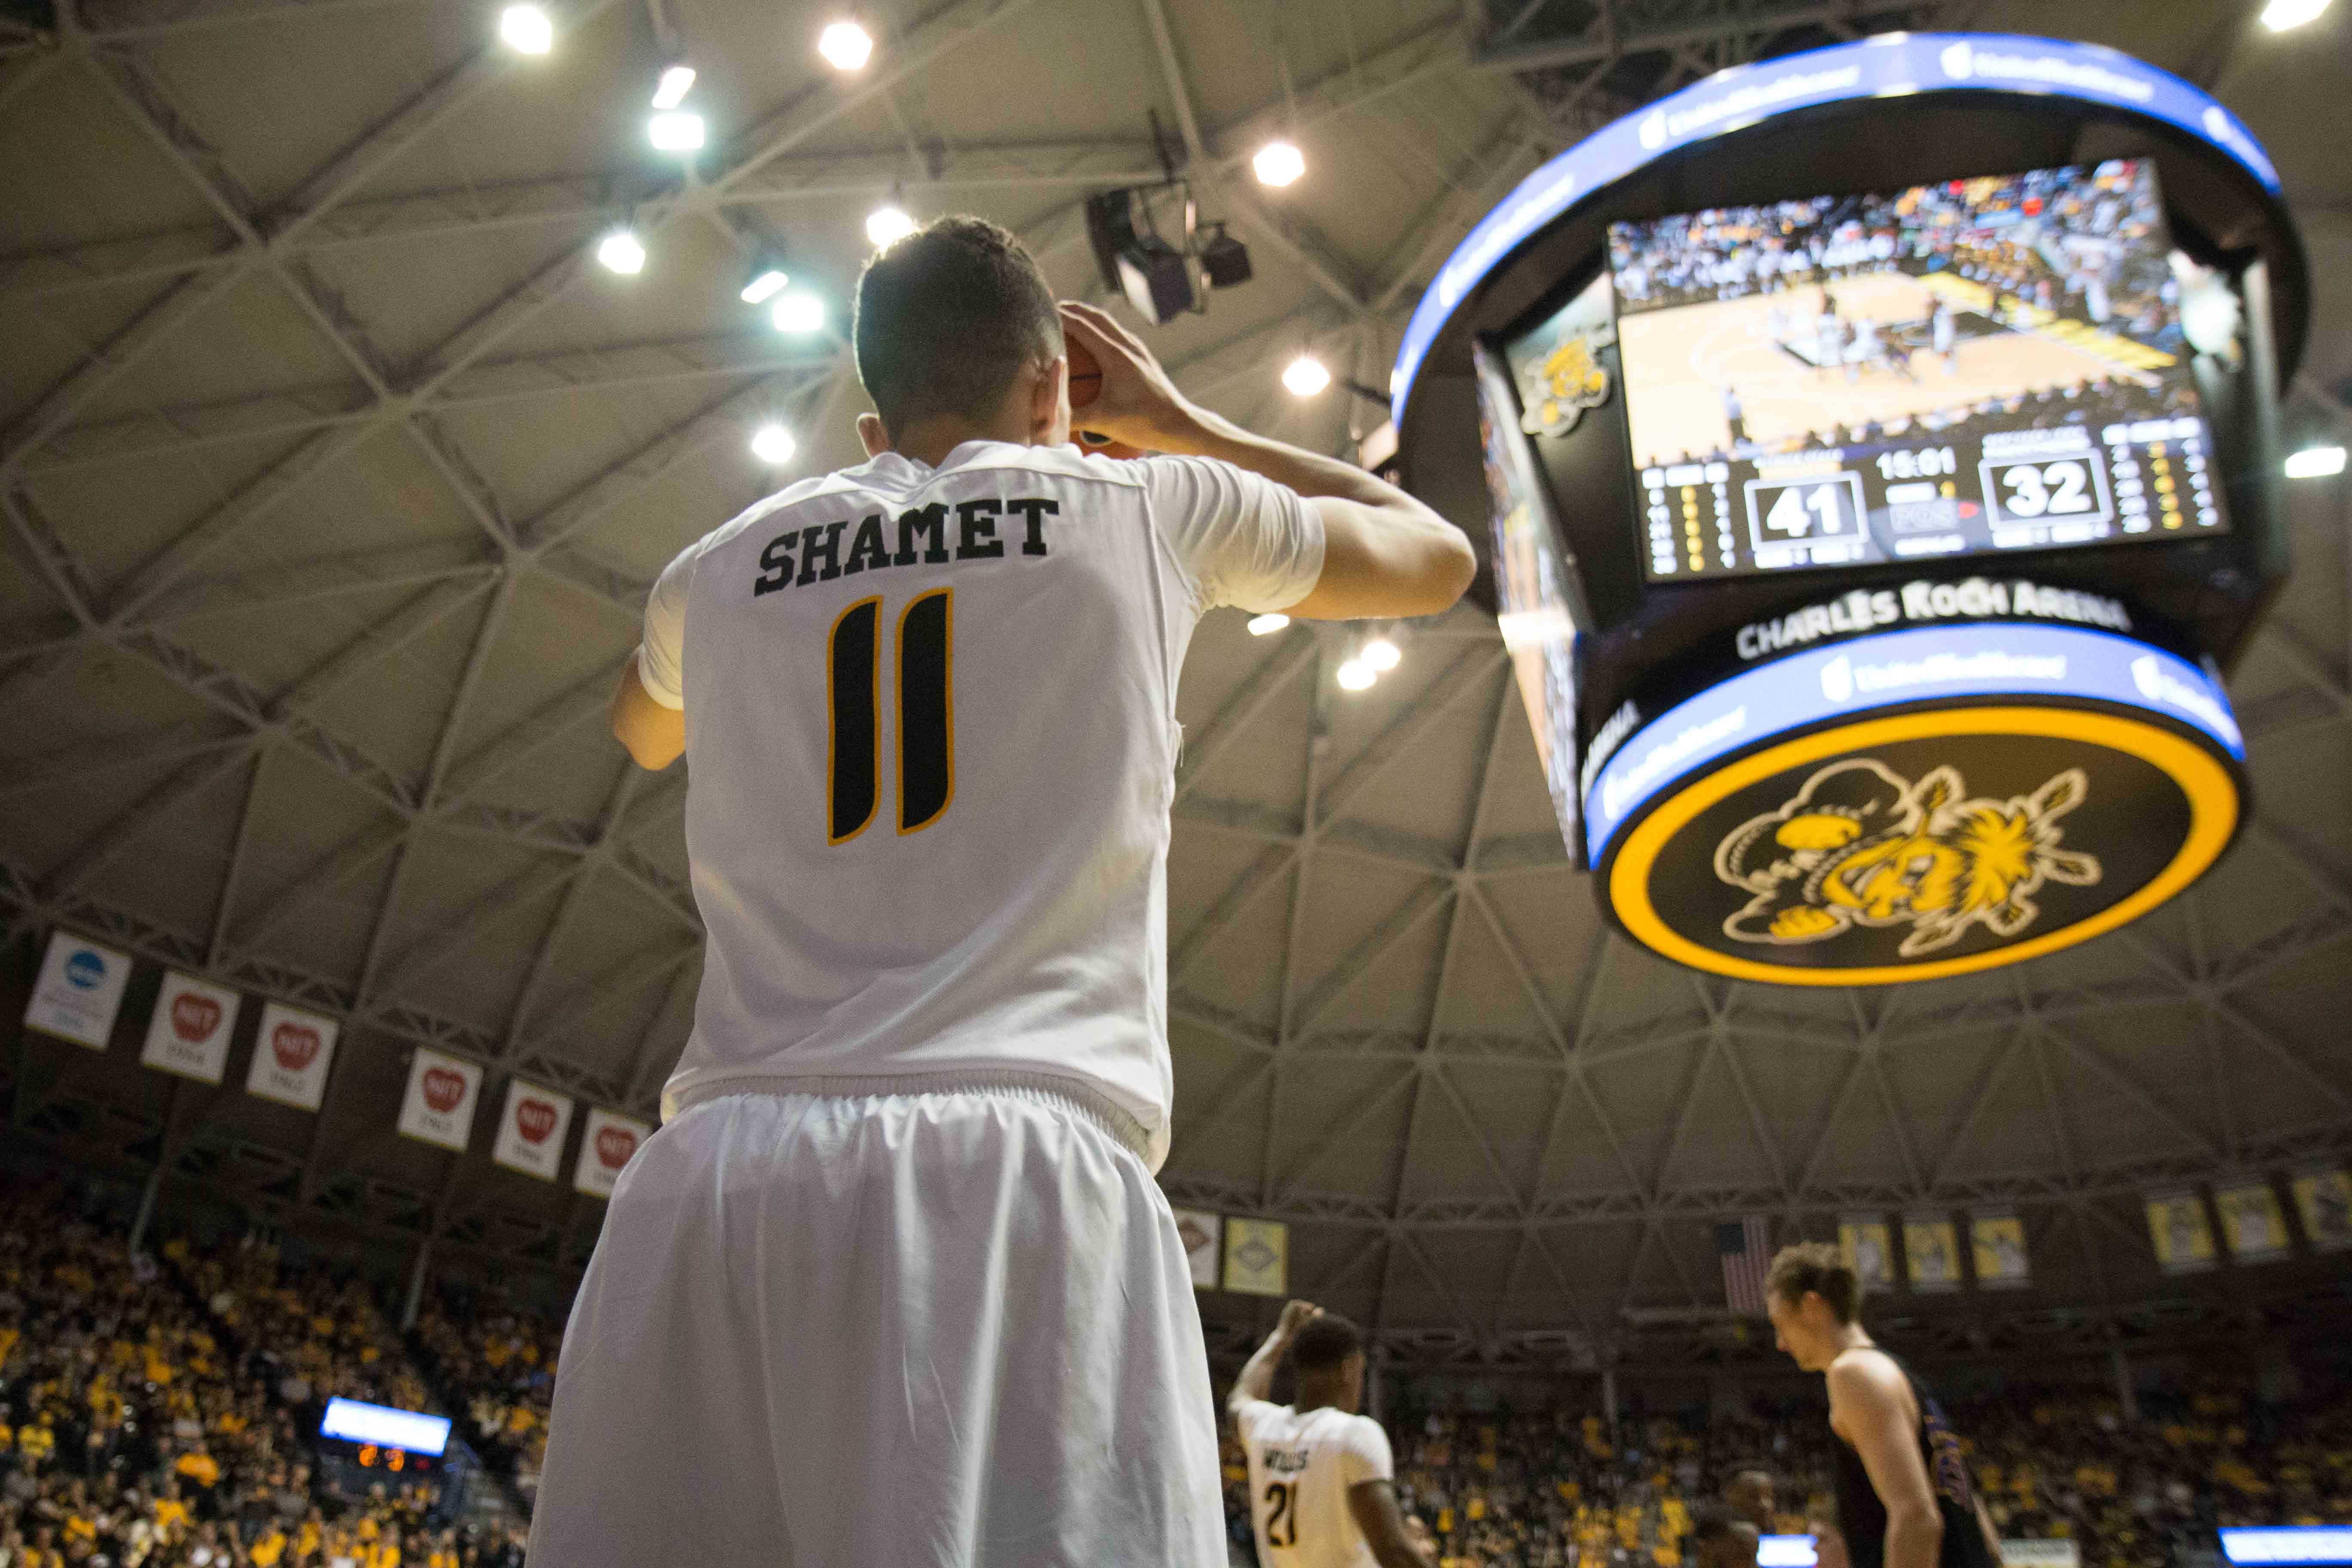 Wichita State guard Landry Shamet prepares to pass the ball to a teammate. Shamet played a total of 28 minutes during the game against Northern Iowa. (Feb. 18, 2017)